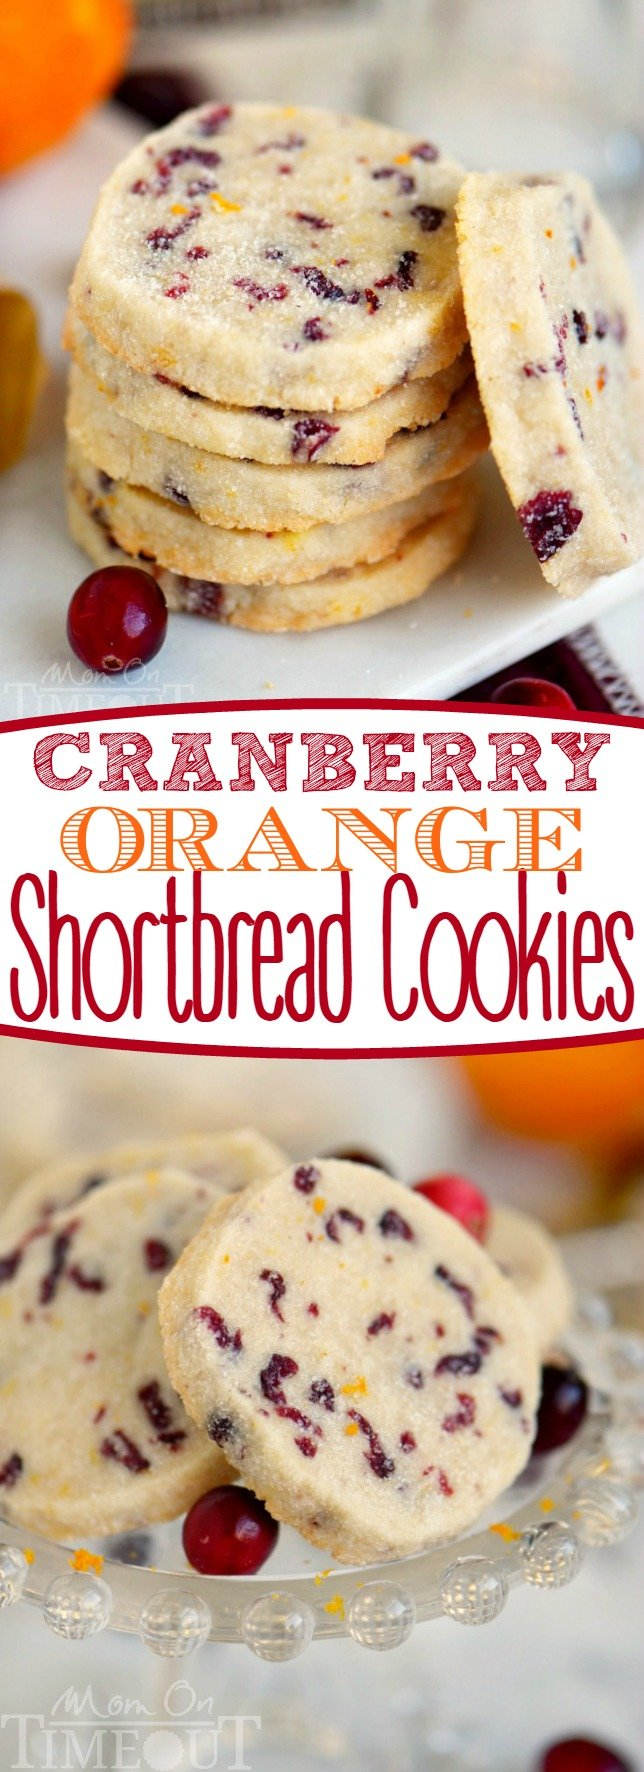 A delightfully easy cookie recipe that yields sensational results! I'm sharing three secrets to the perfect shortbread cookies that no one can resist! Make sure to add these easy Cranberry Orange Shortbread Cookies to your holiday baking list this season!